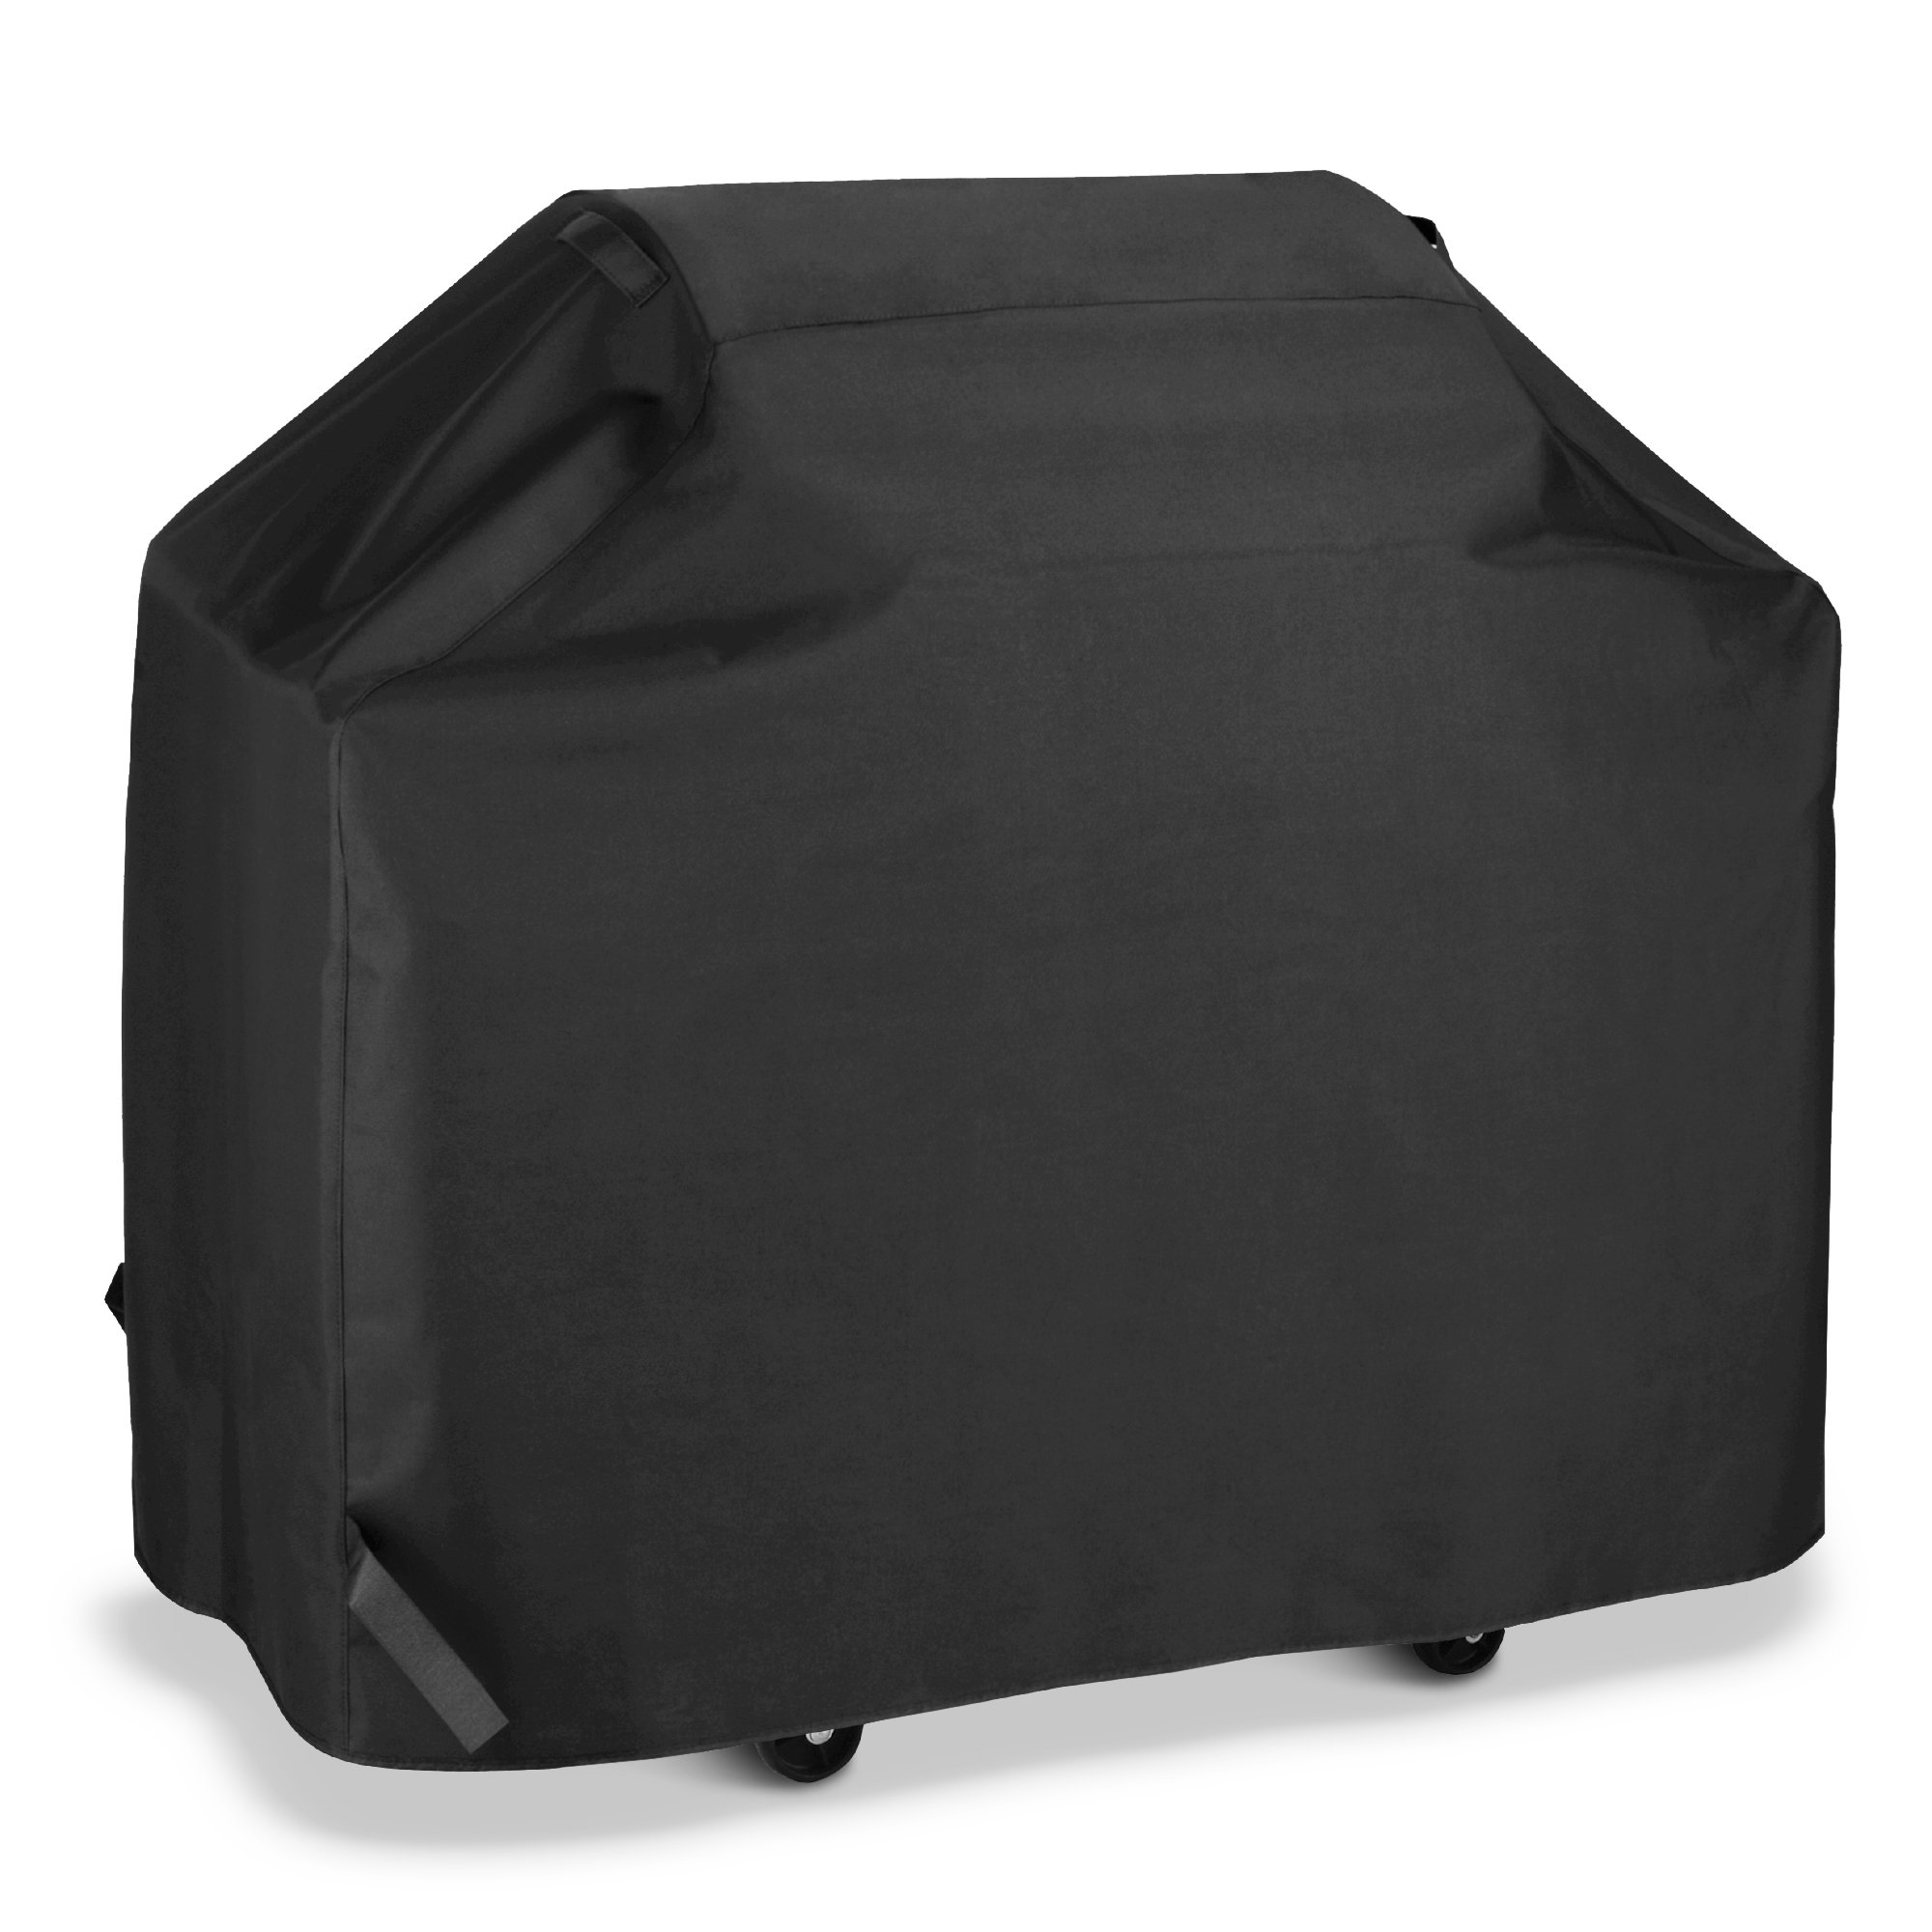 SunPatio BBQ Grill Cover 55 Inch, Outdoor Heavy Duty Waterproof Barbecue Gas Grill Cover, UV and Fade Resistant, All Weather Protection for Weber Char-Broil Nexgrill Grills and More, Black by SunPatio